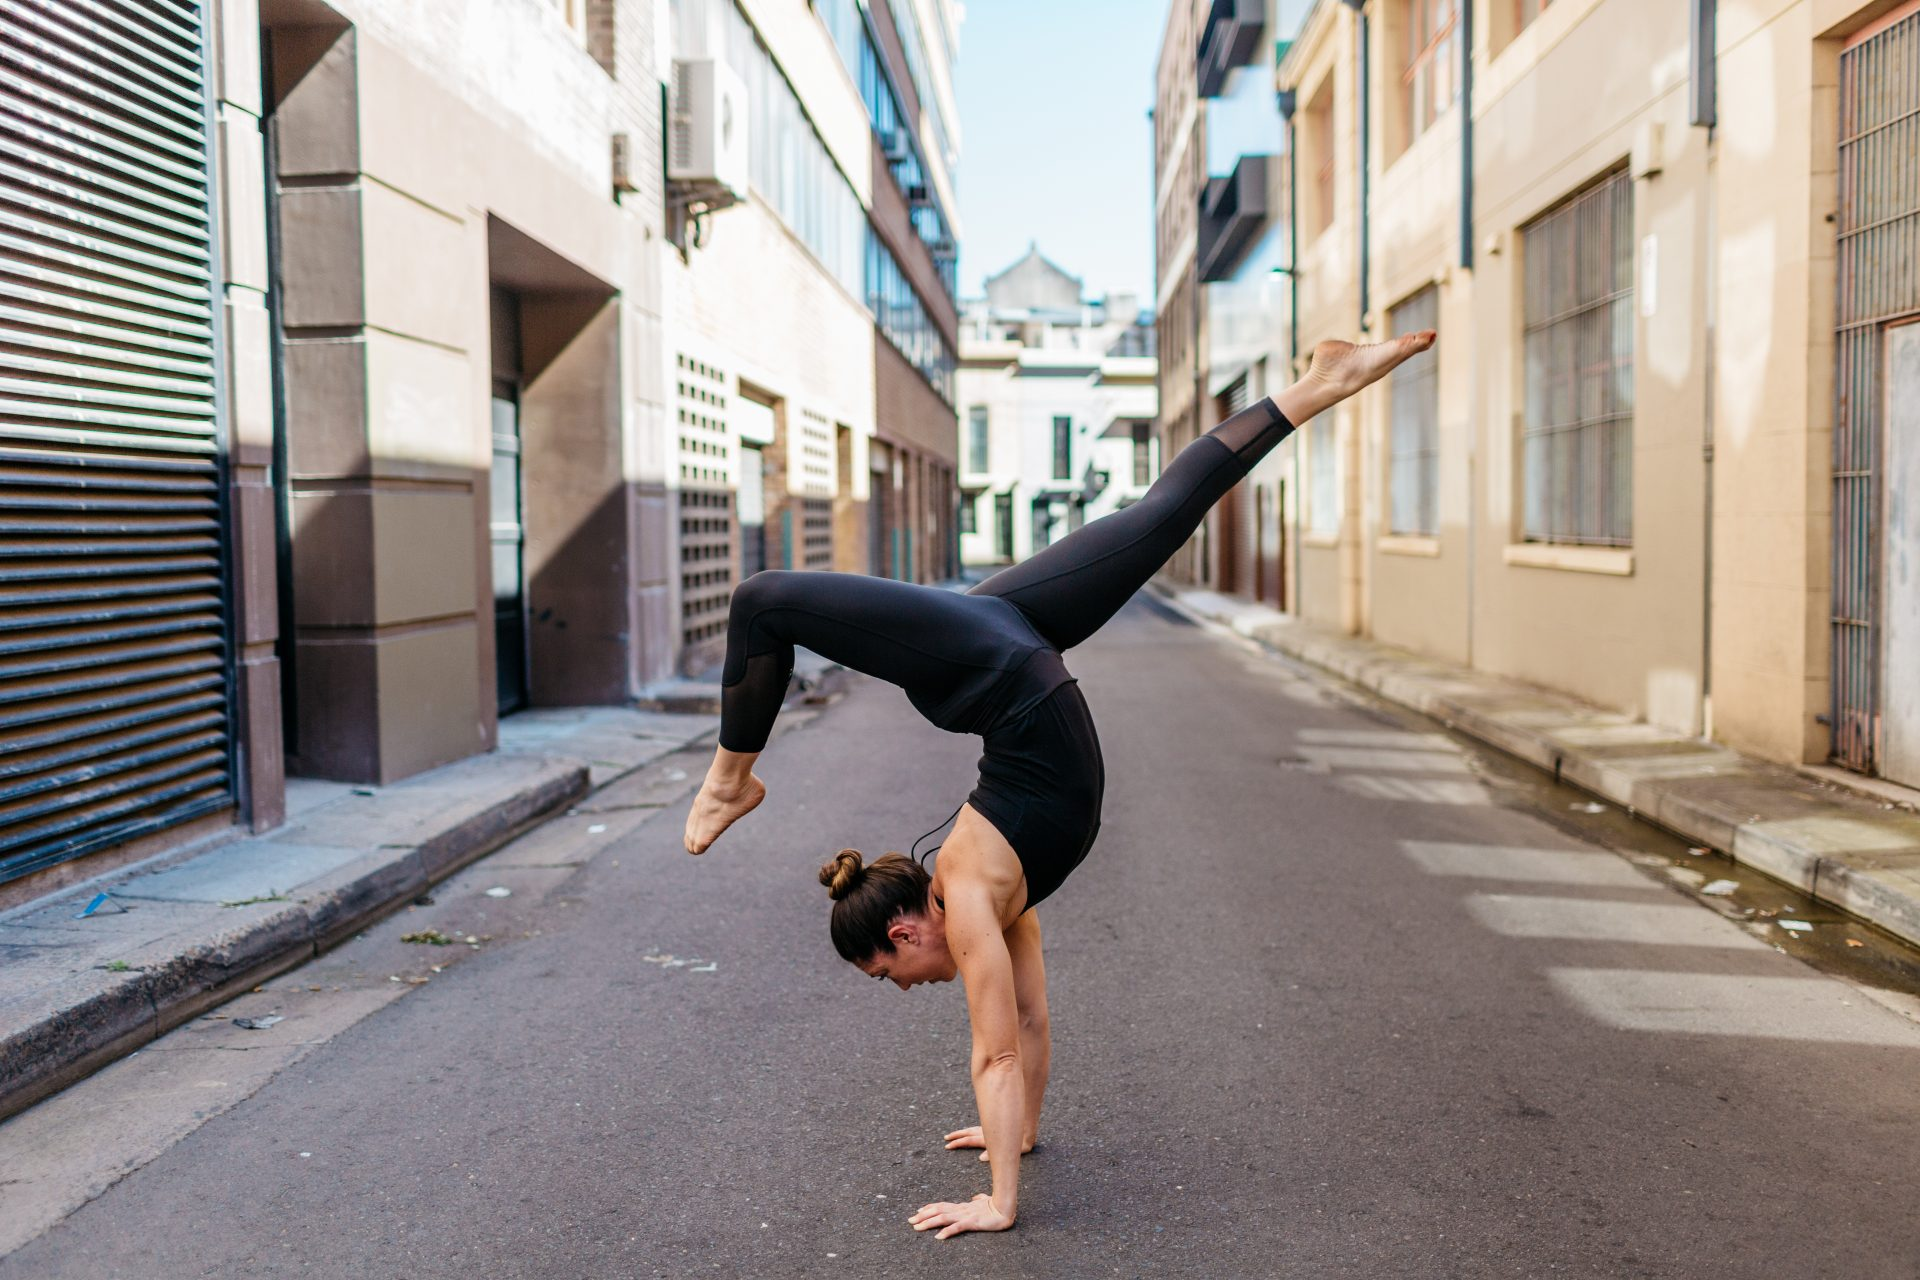 Kat Clayton doing a yoga pose handstand arm balance in an urban city environment Yoga Teacher Kat teaches workshops to learn how to handstand and armbalance